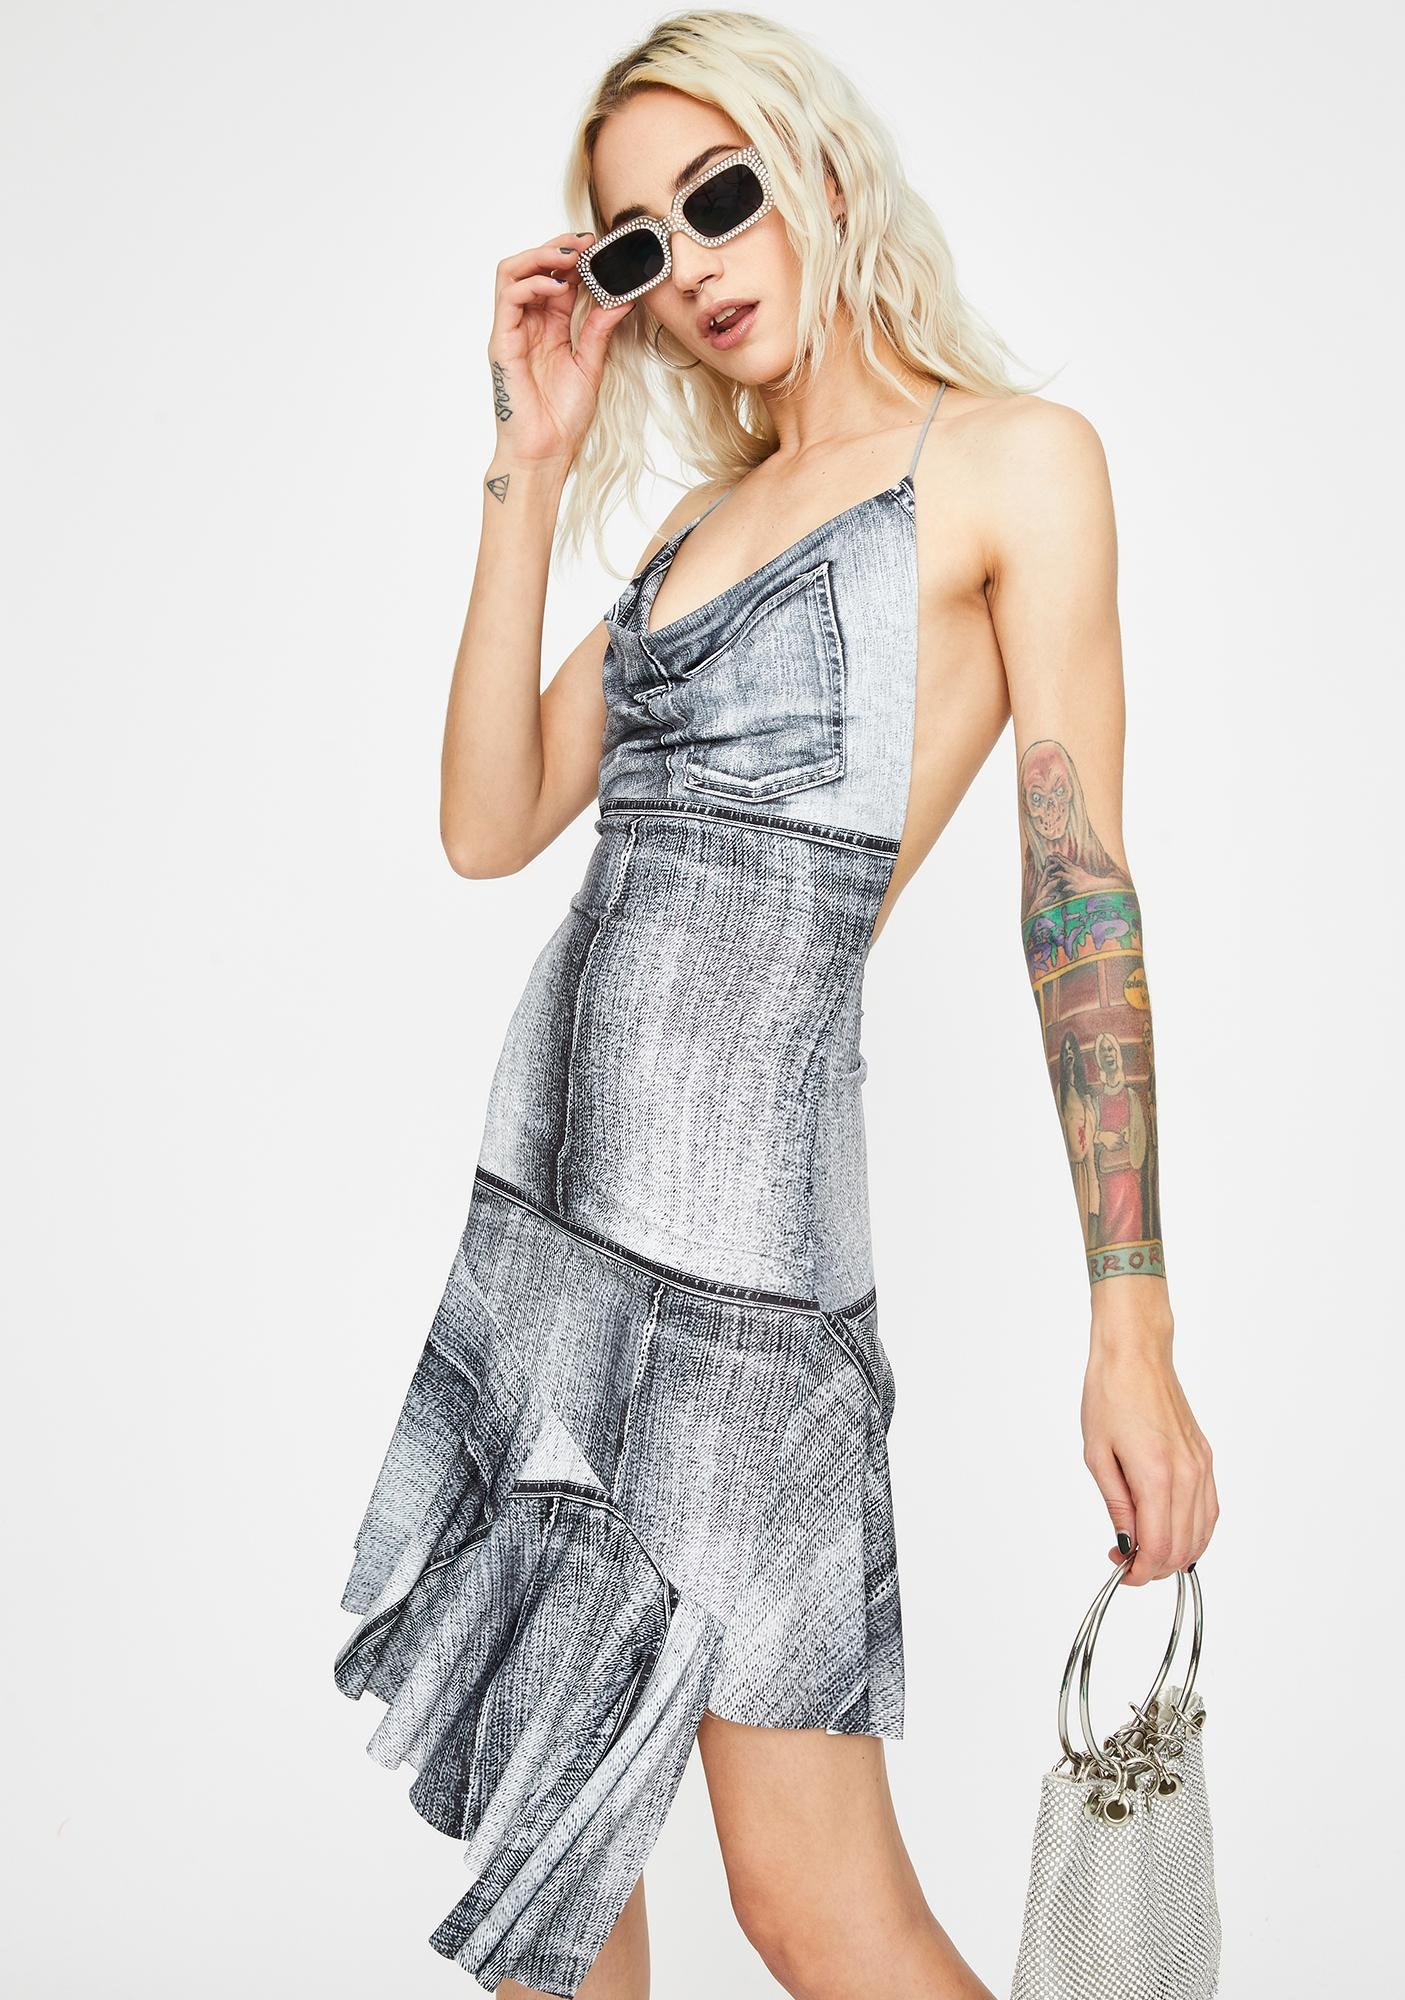 Kiki Riki Carried Away Halter Dress